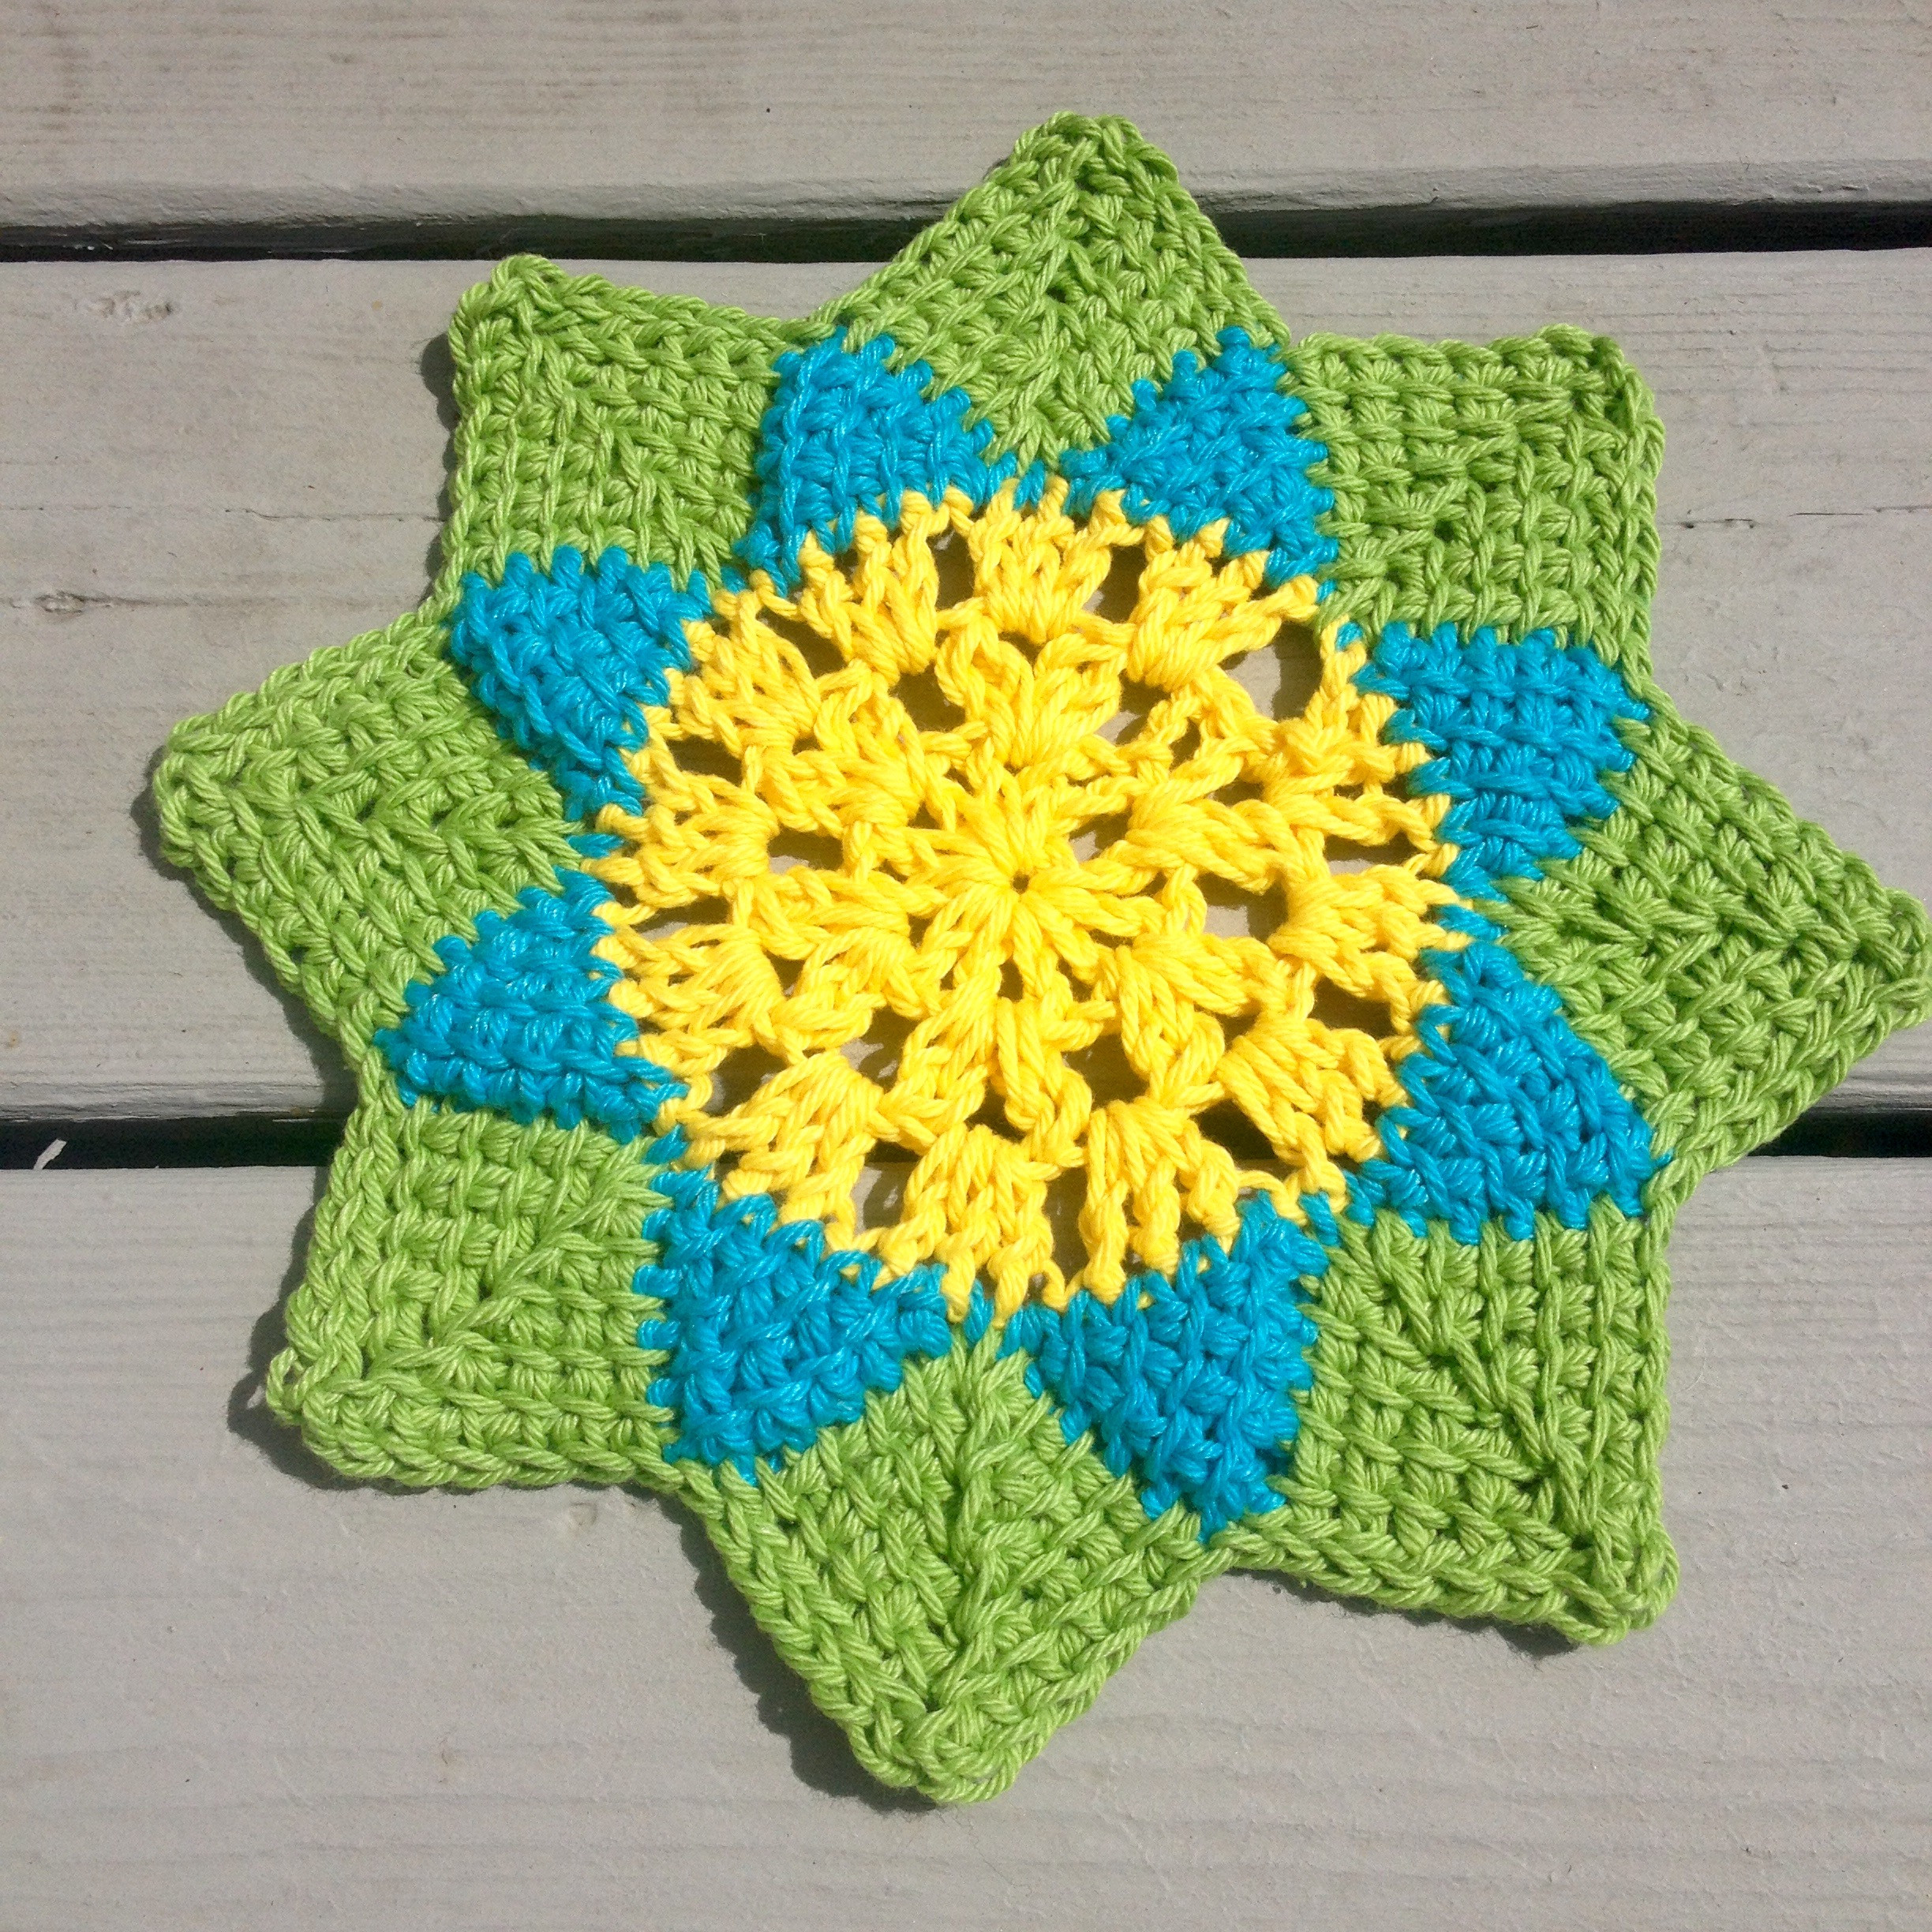 Tunisian Crochet Patterns Luxury Spring Flower Dishcloth Free Tunisian Crochet Pattern Of Marvelous 45 Pics Tunisian Crochet Patterns